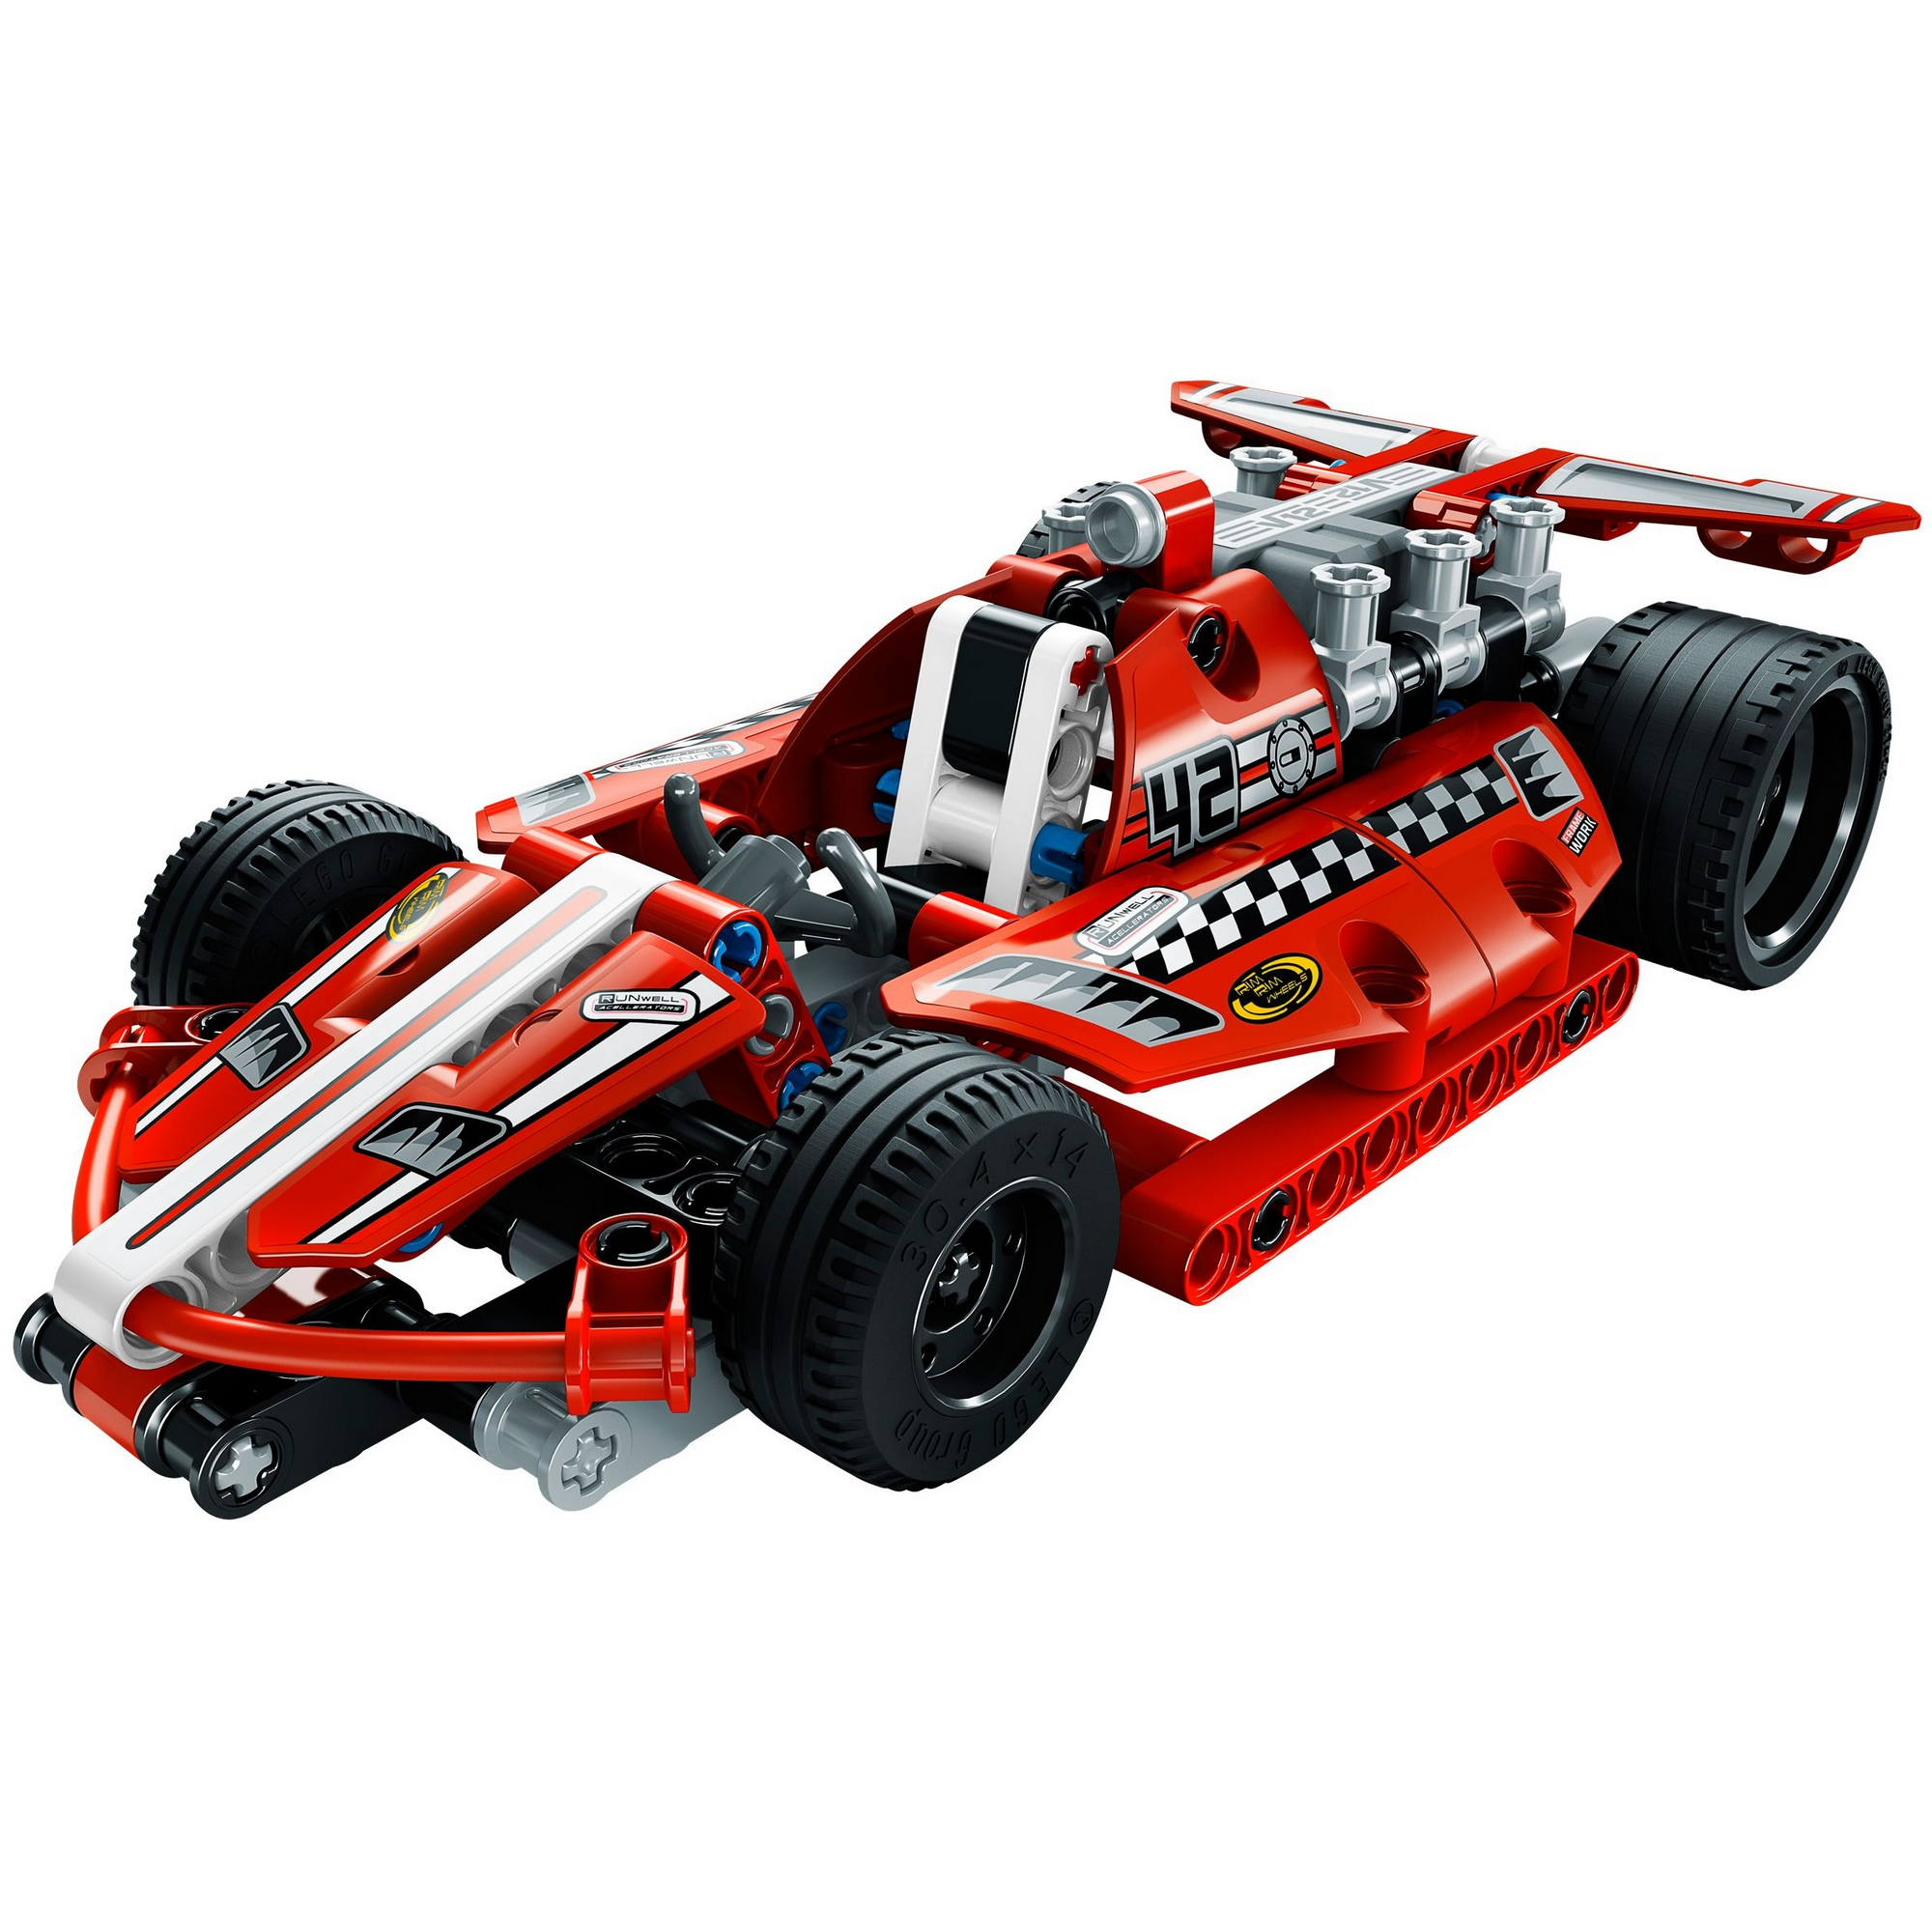 buy race car lego technic 42011 on robot advance. Black Bedroom Furniture Sets. Home Design Ideas